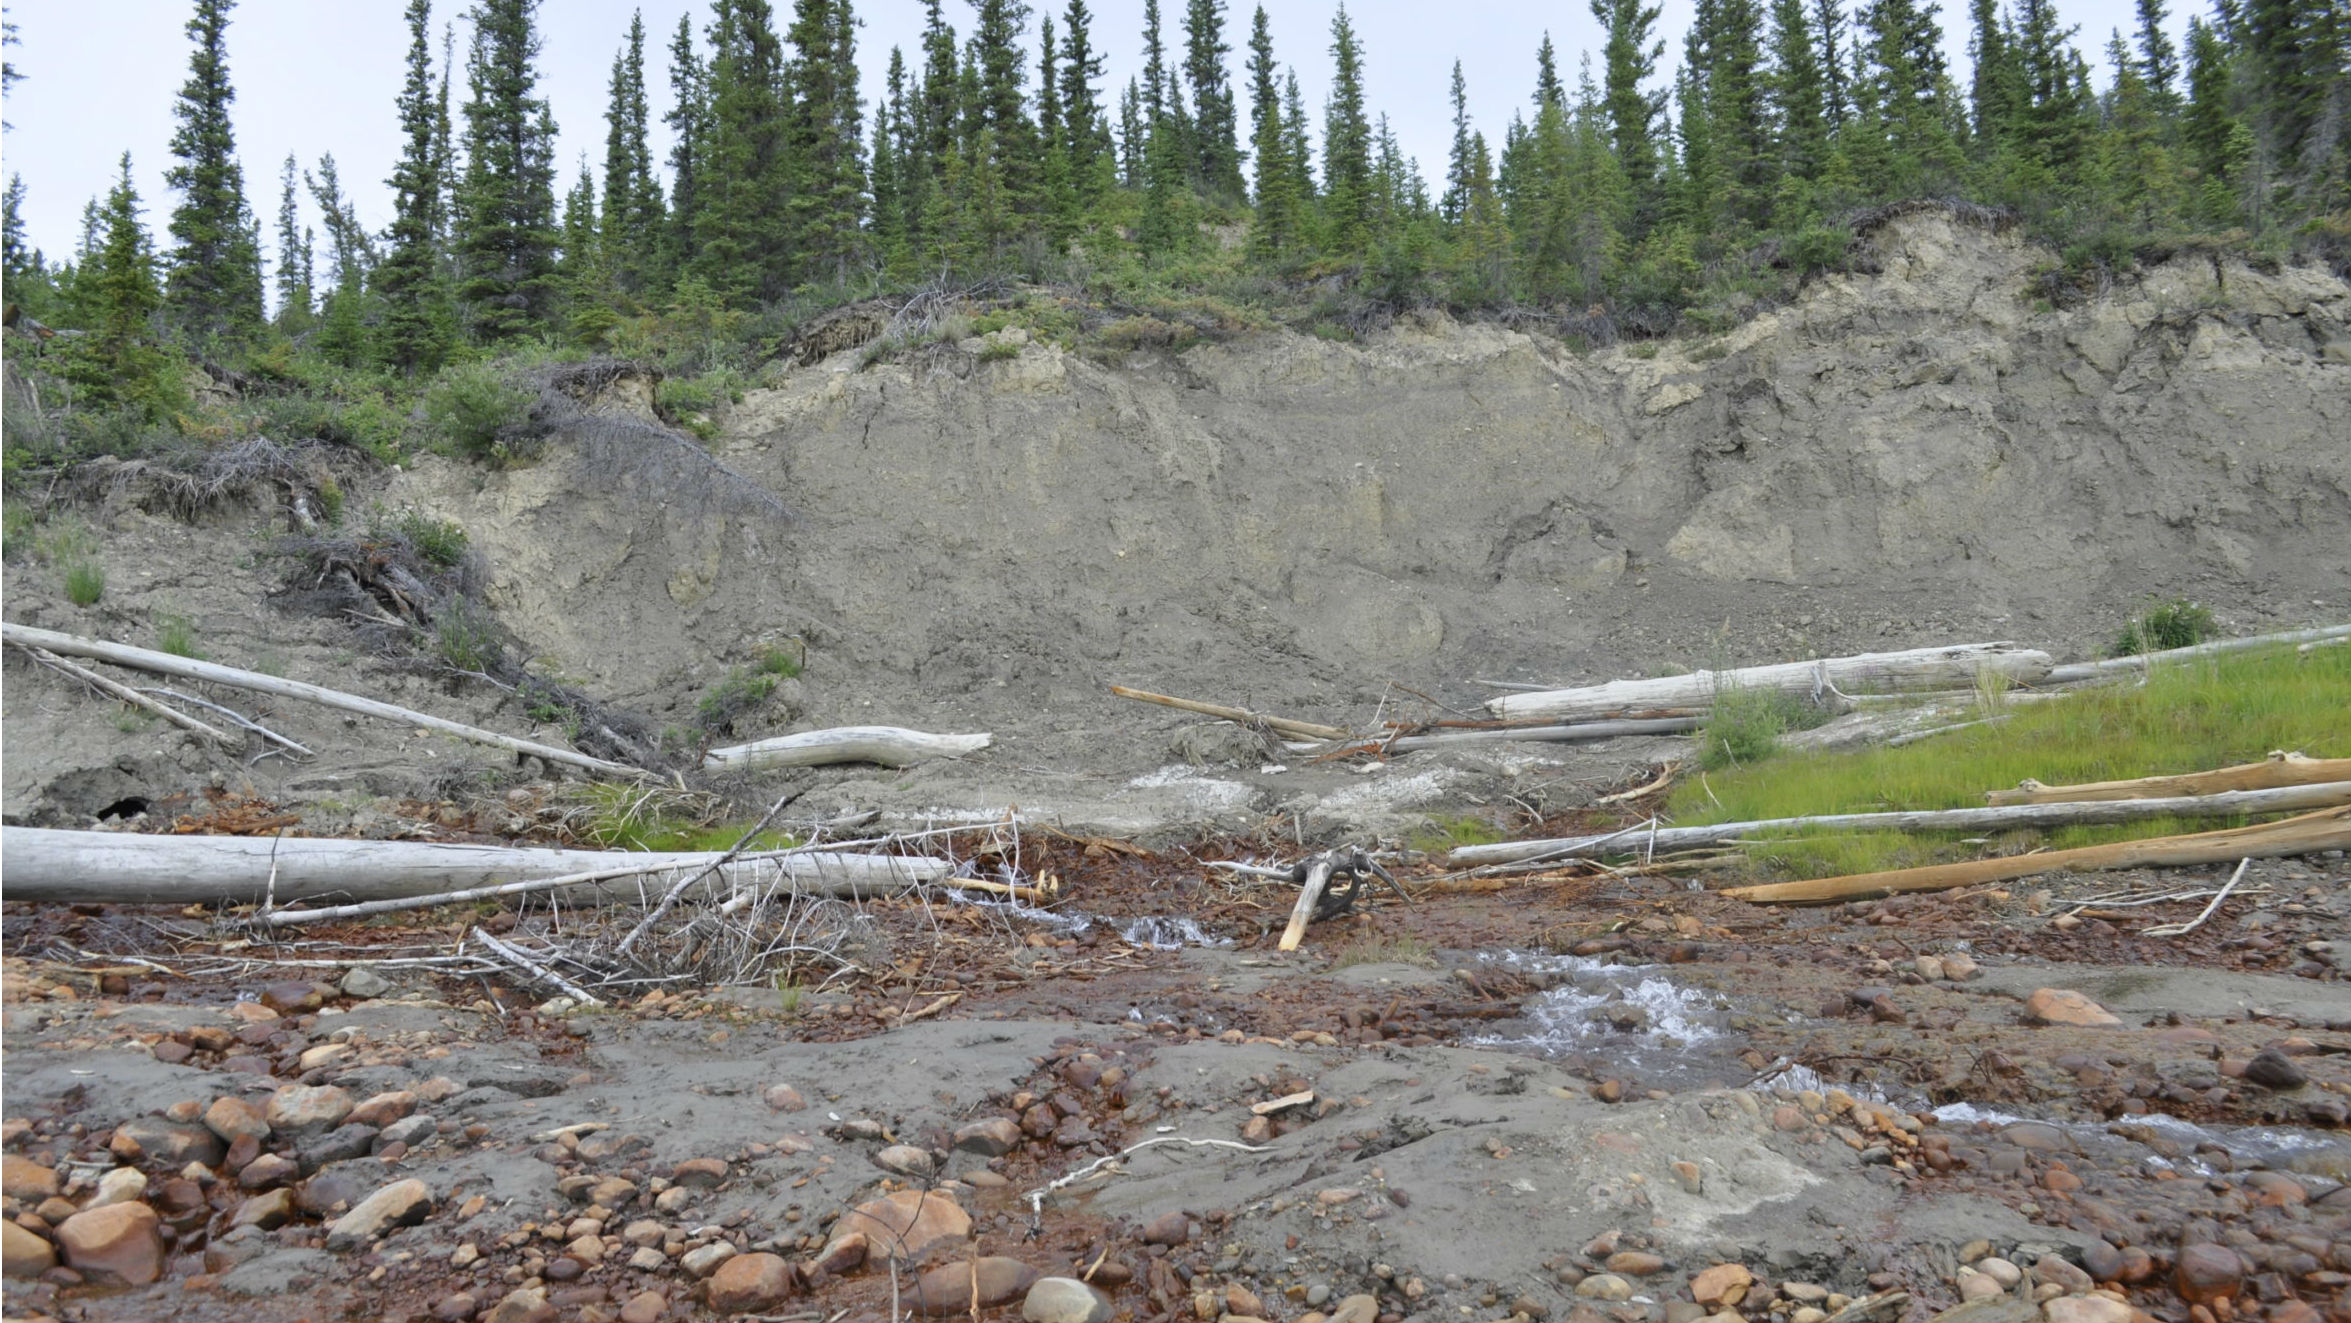 Shifting ground threatening homes in this Northern Canadian